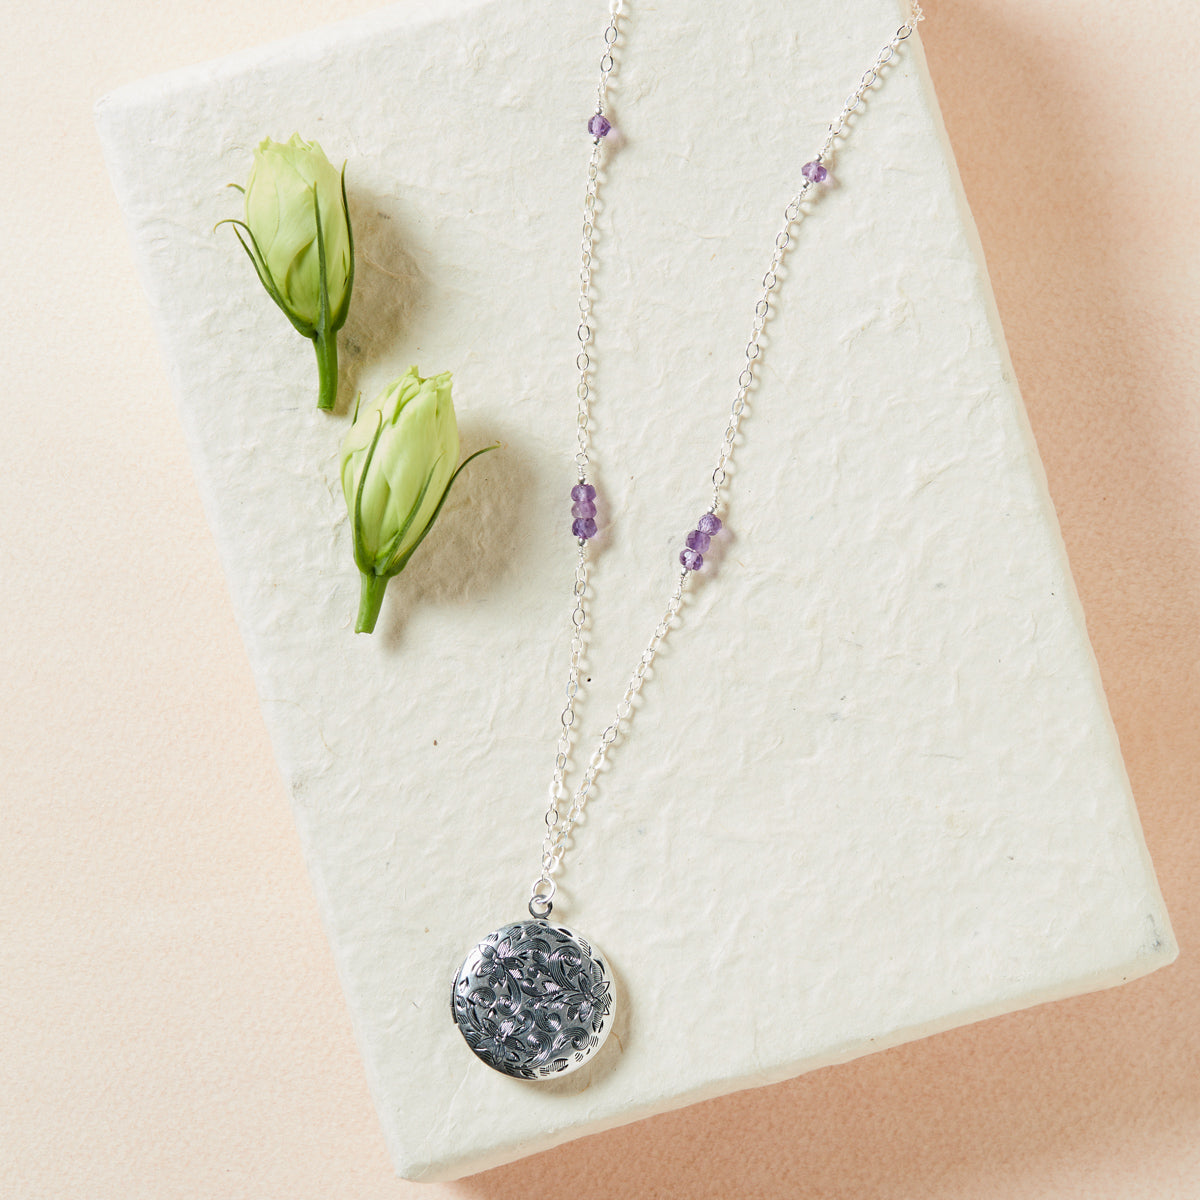 Amethyst Locket Necklace